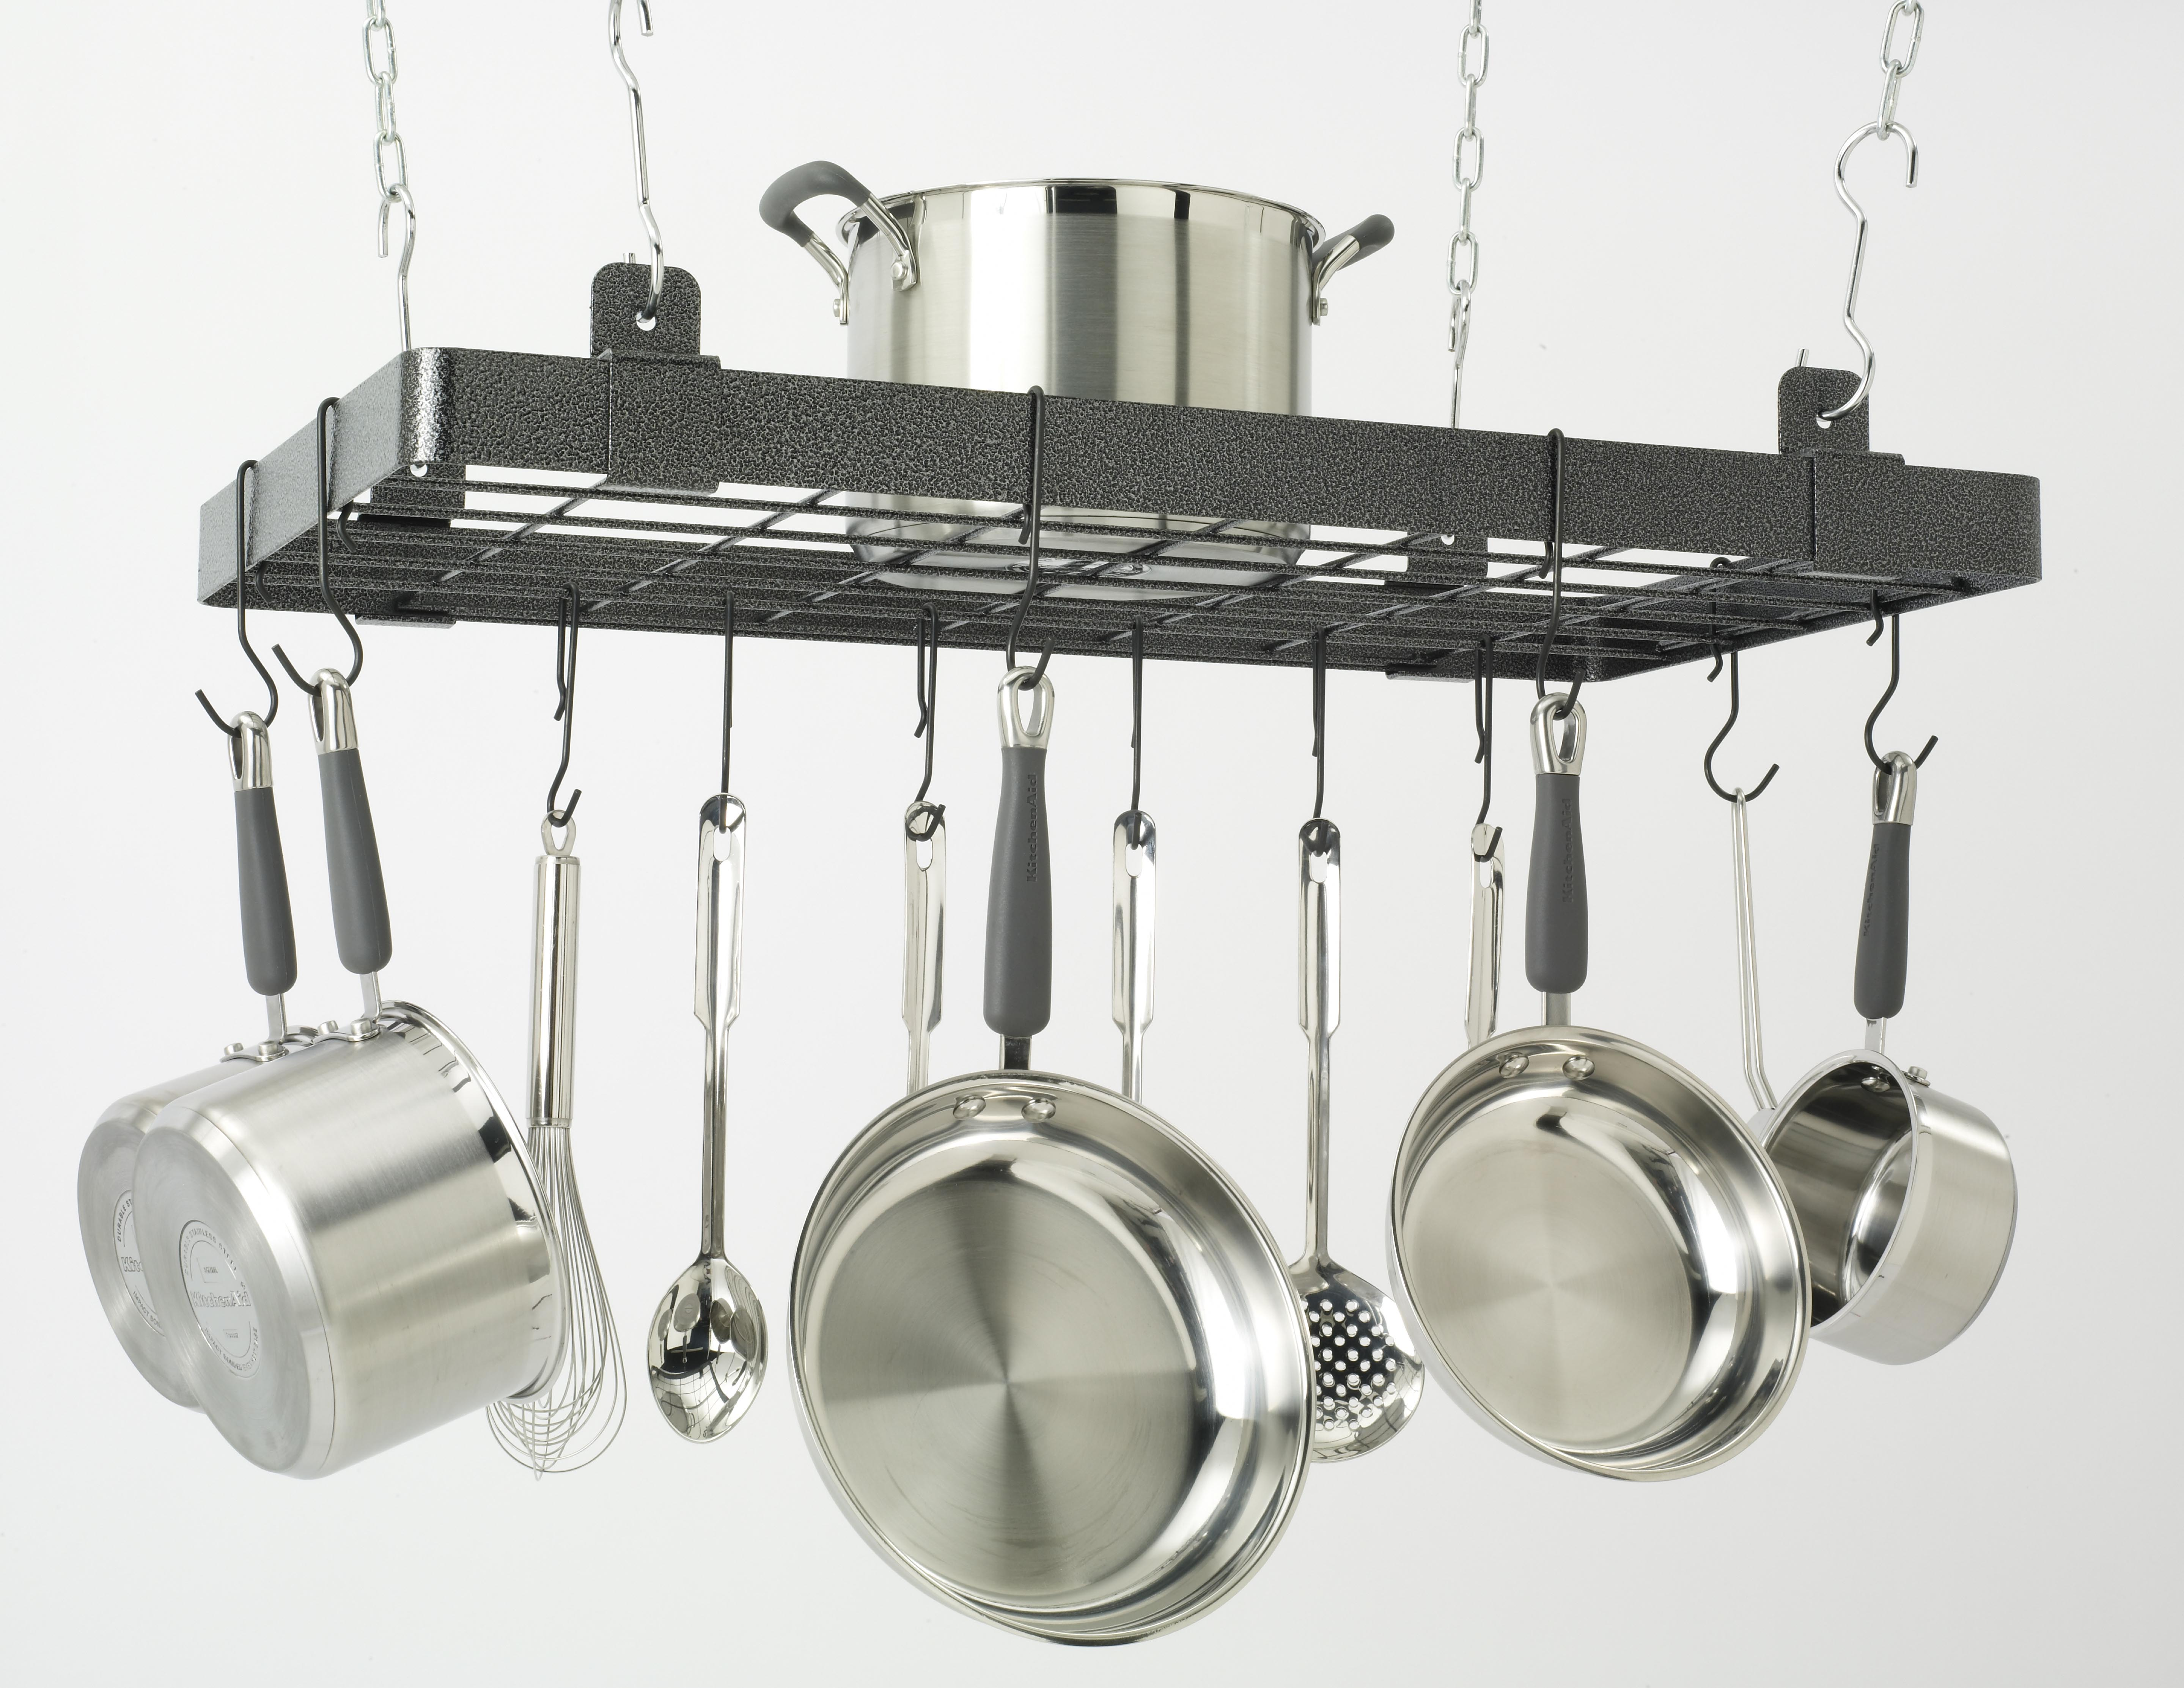 Designer Kitchen Pot Rack by Jay Rinaldo for Storage Technology